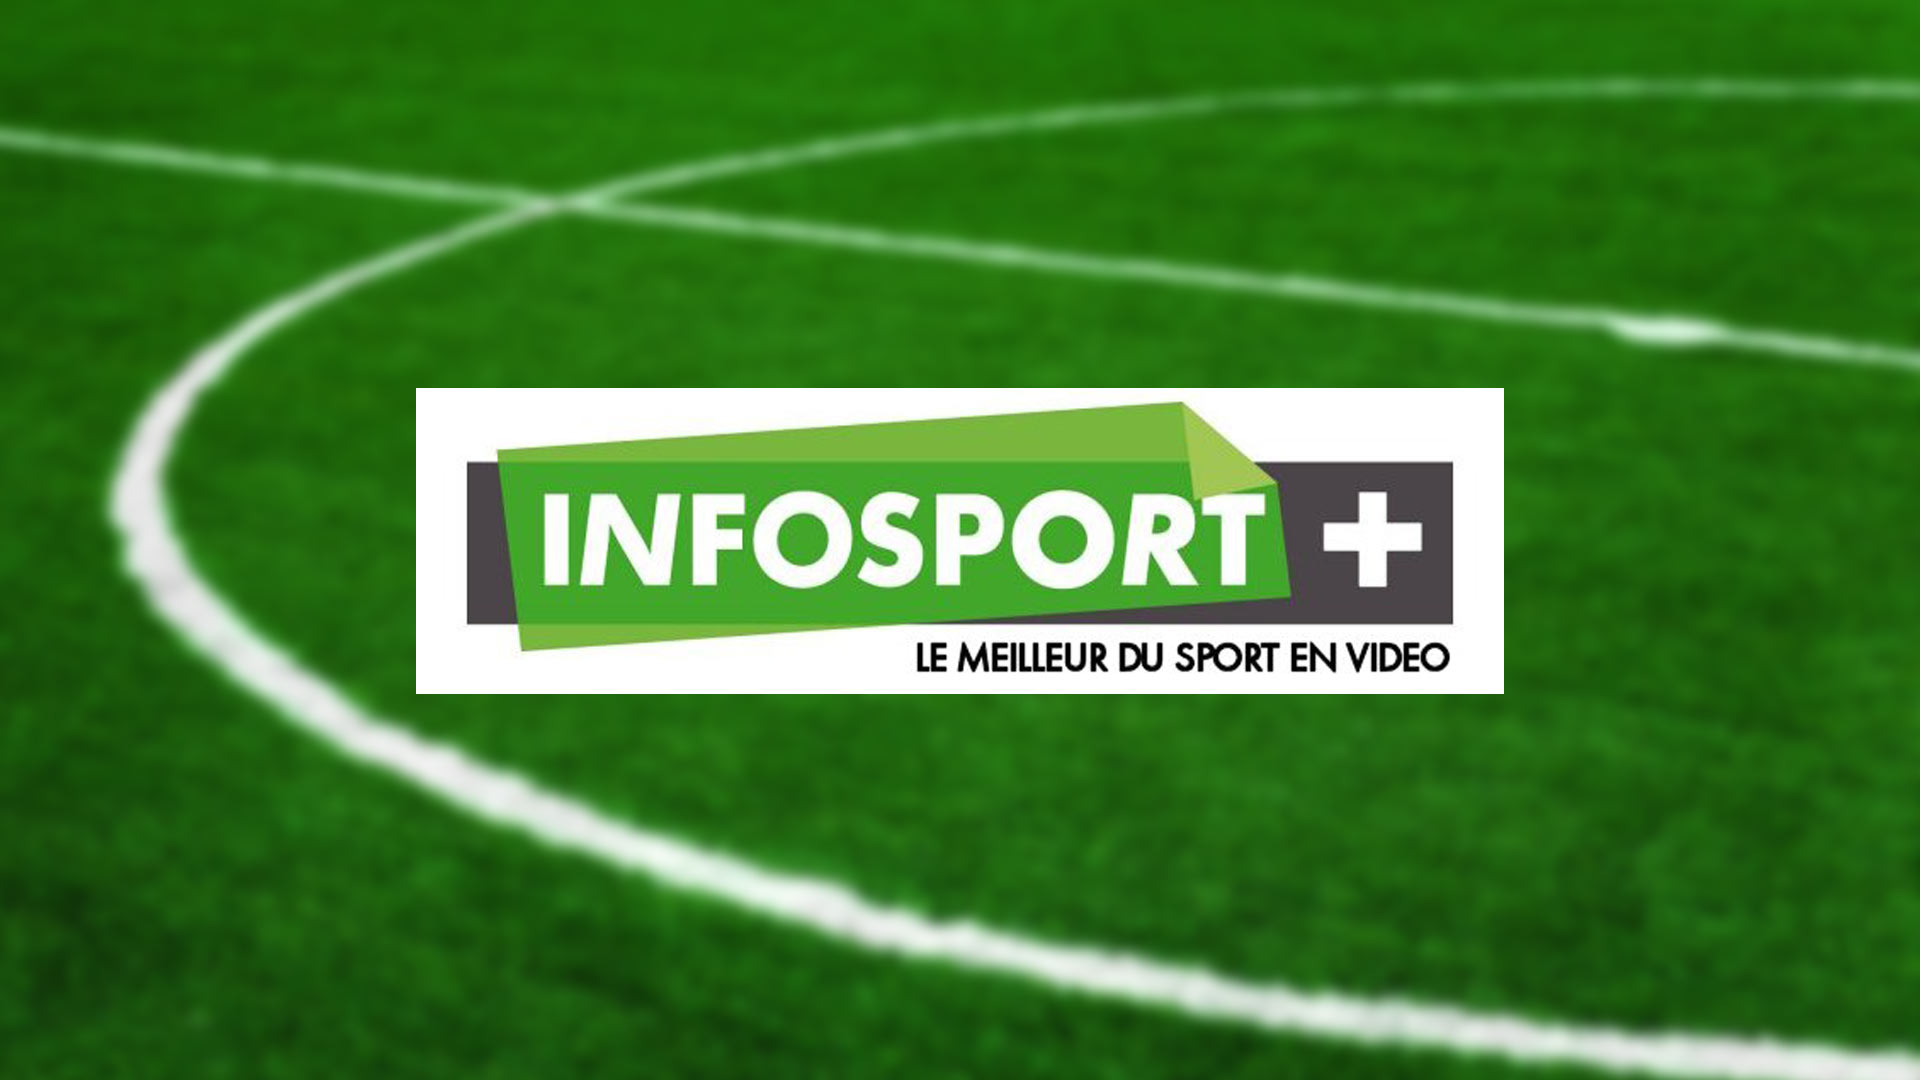 Regarder infosport en direct live 100 gratuit tv direct - Resultat handball en direct coupe d afrique ...